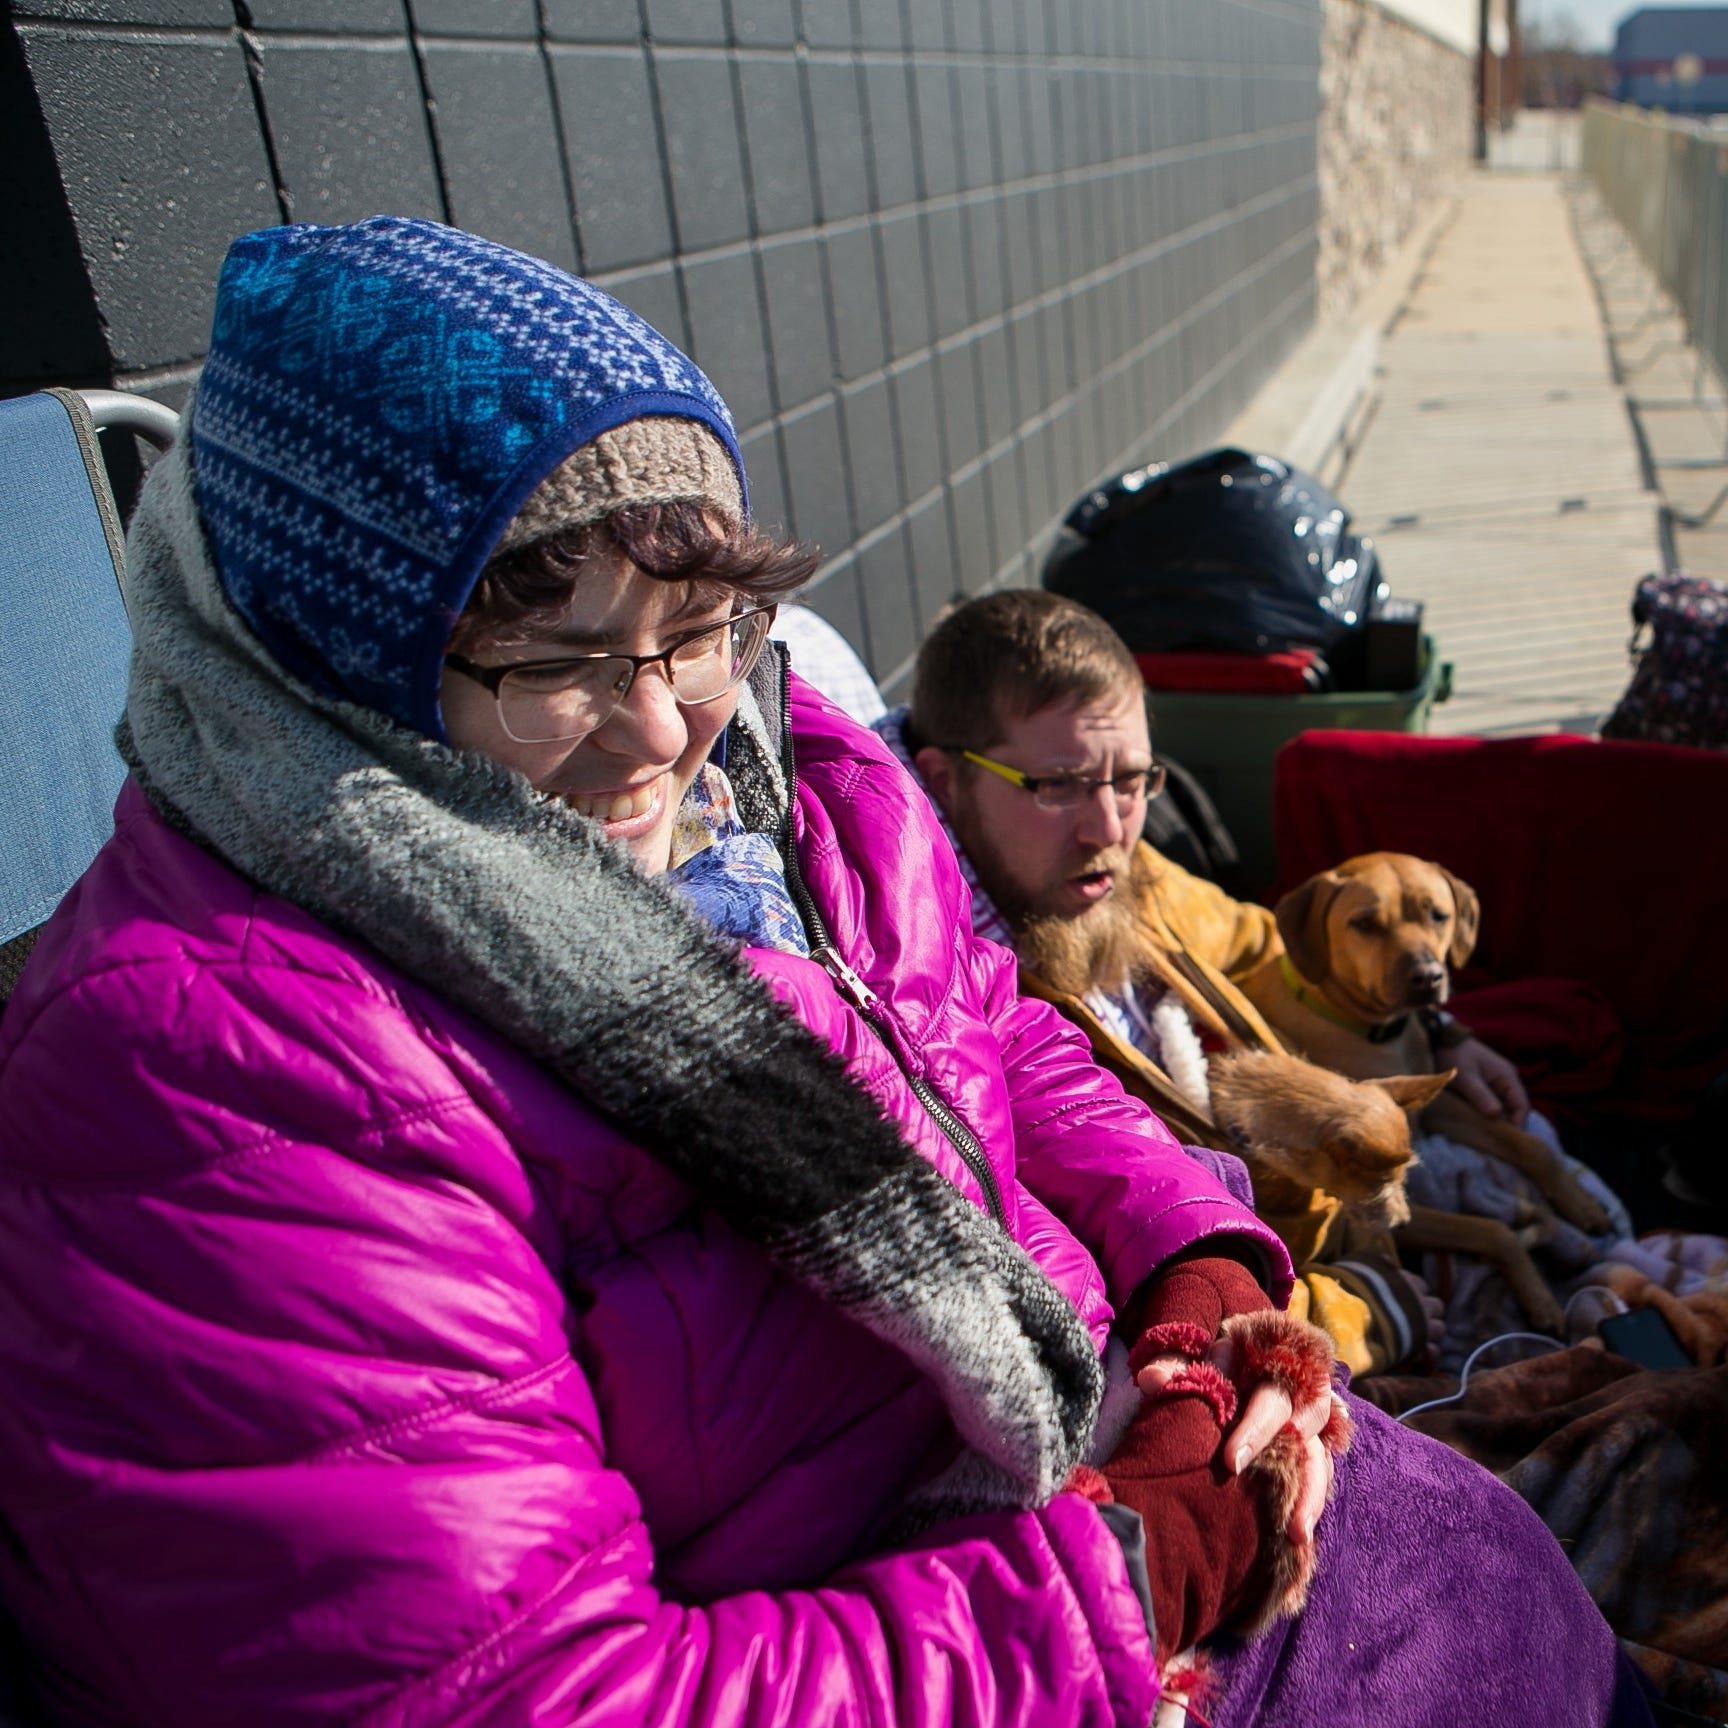 Couple camped outside Best Buy say they will spend up to $15,000 on Black Friday purchases